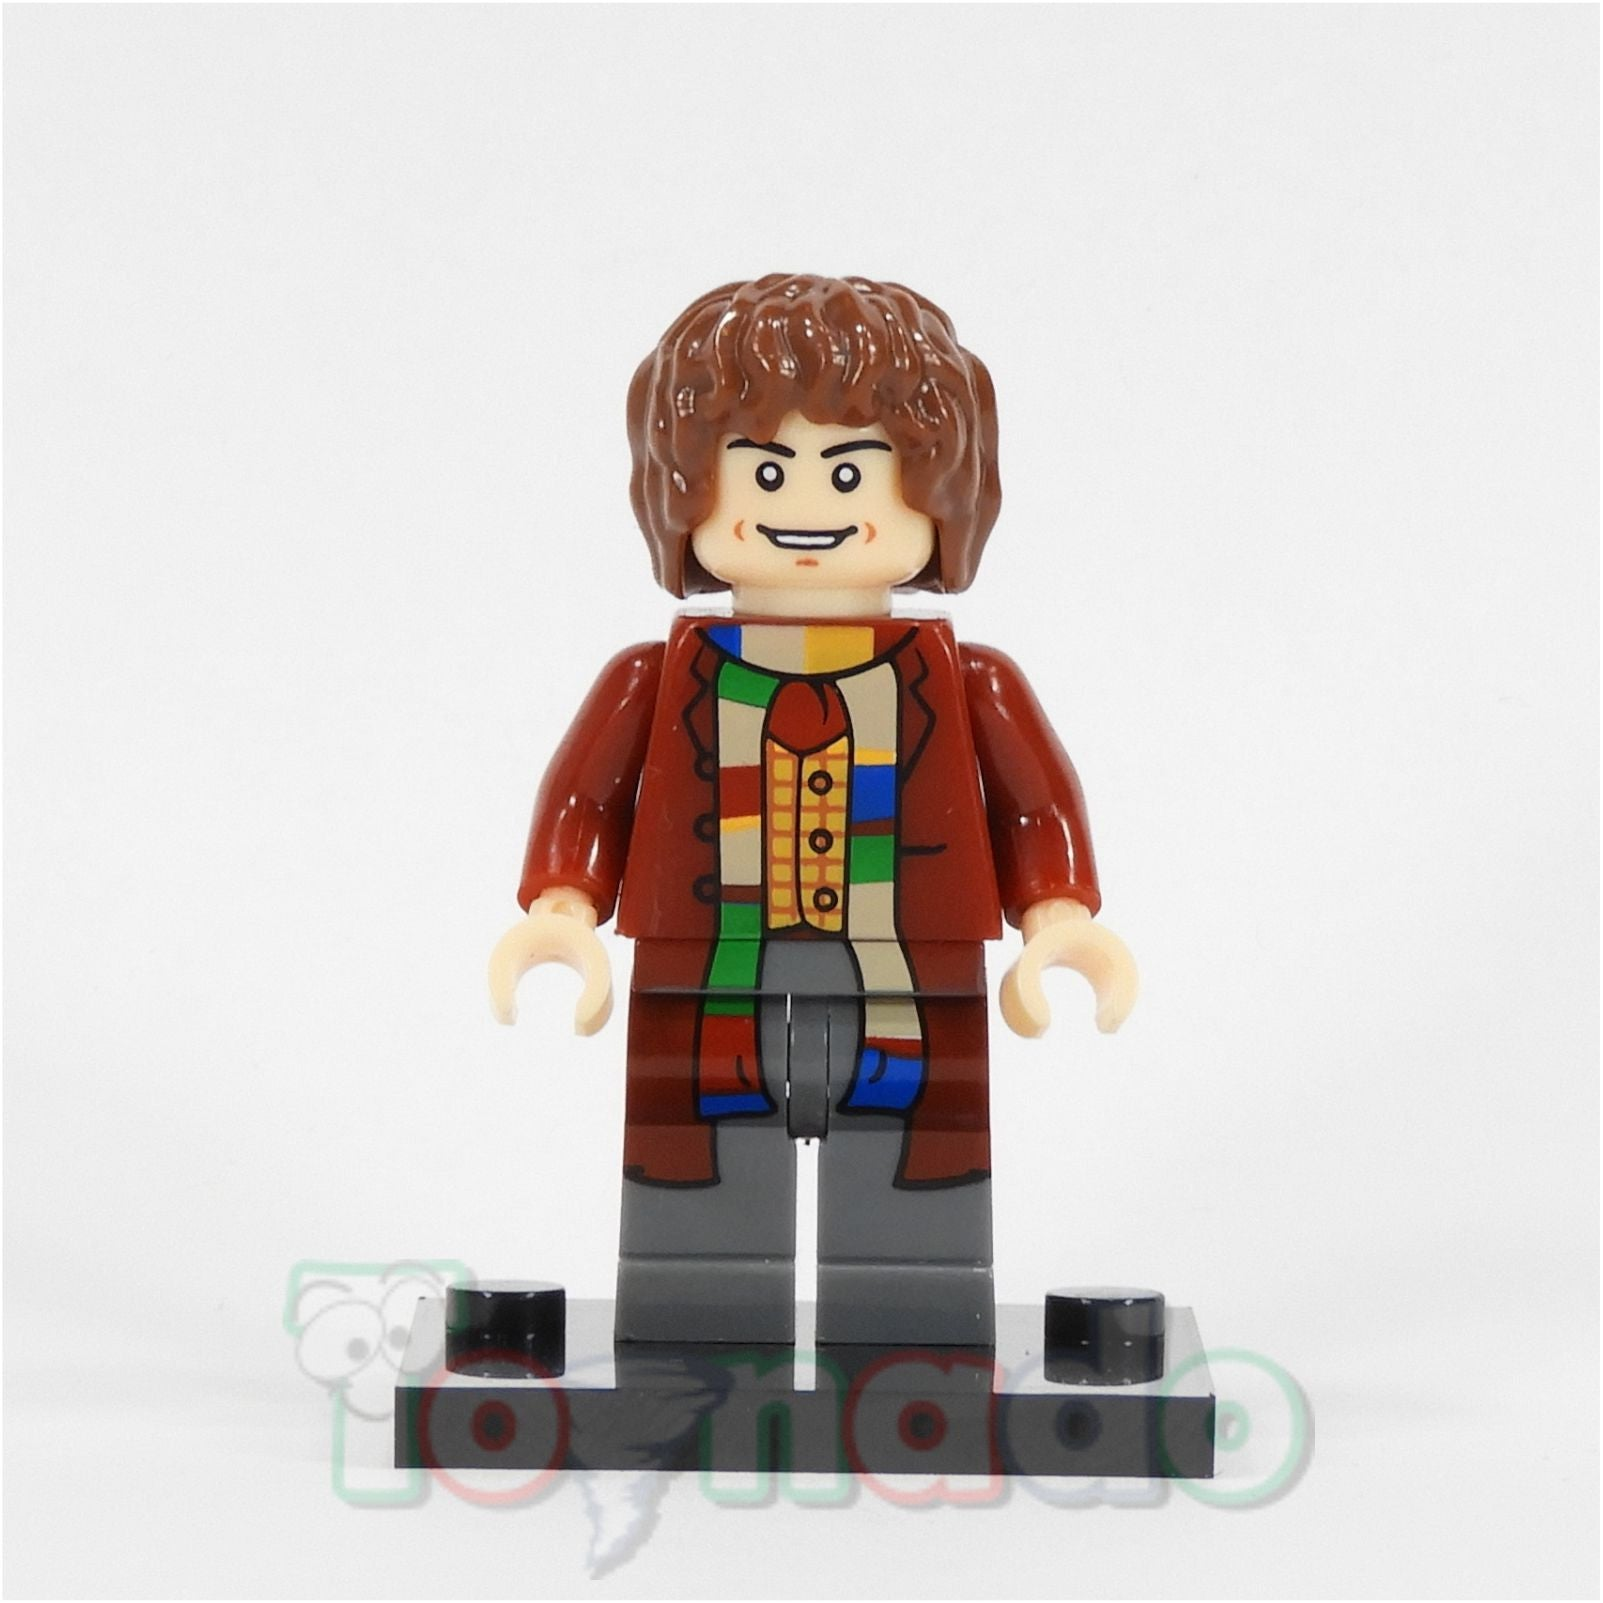 BBC TV - Doctor Who - 4th Doctor (Tom Baker) Custom Minifigure